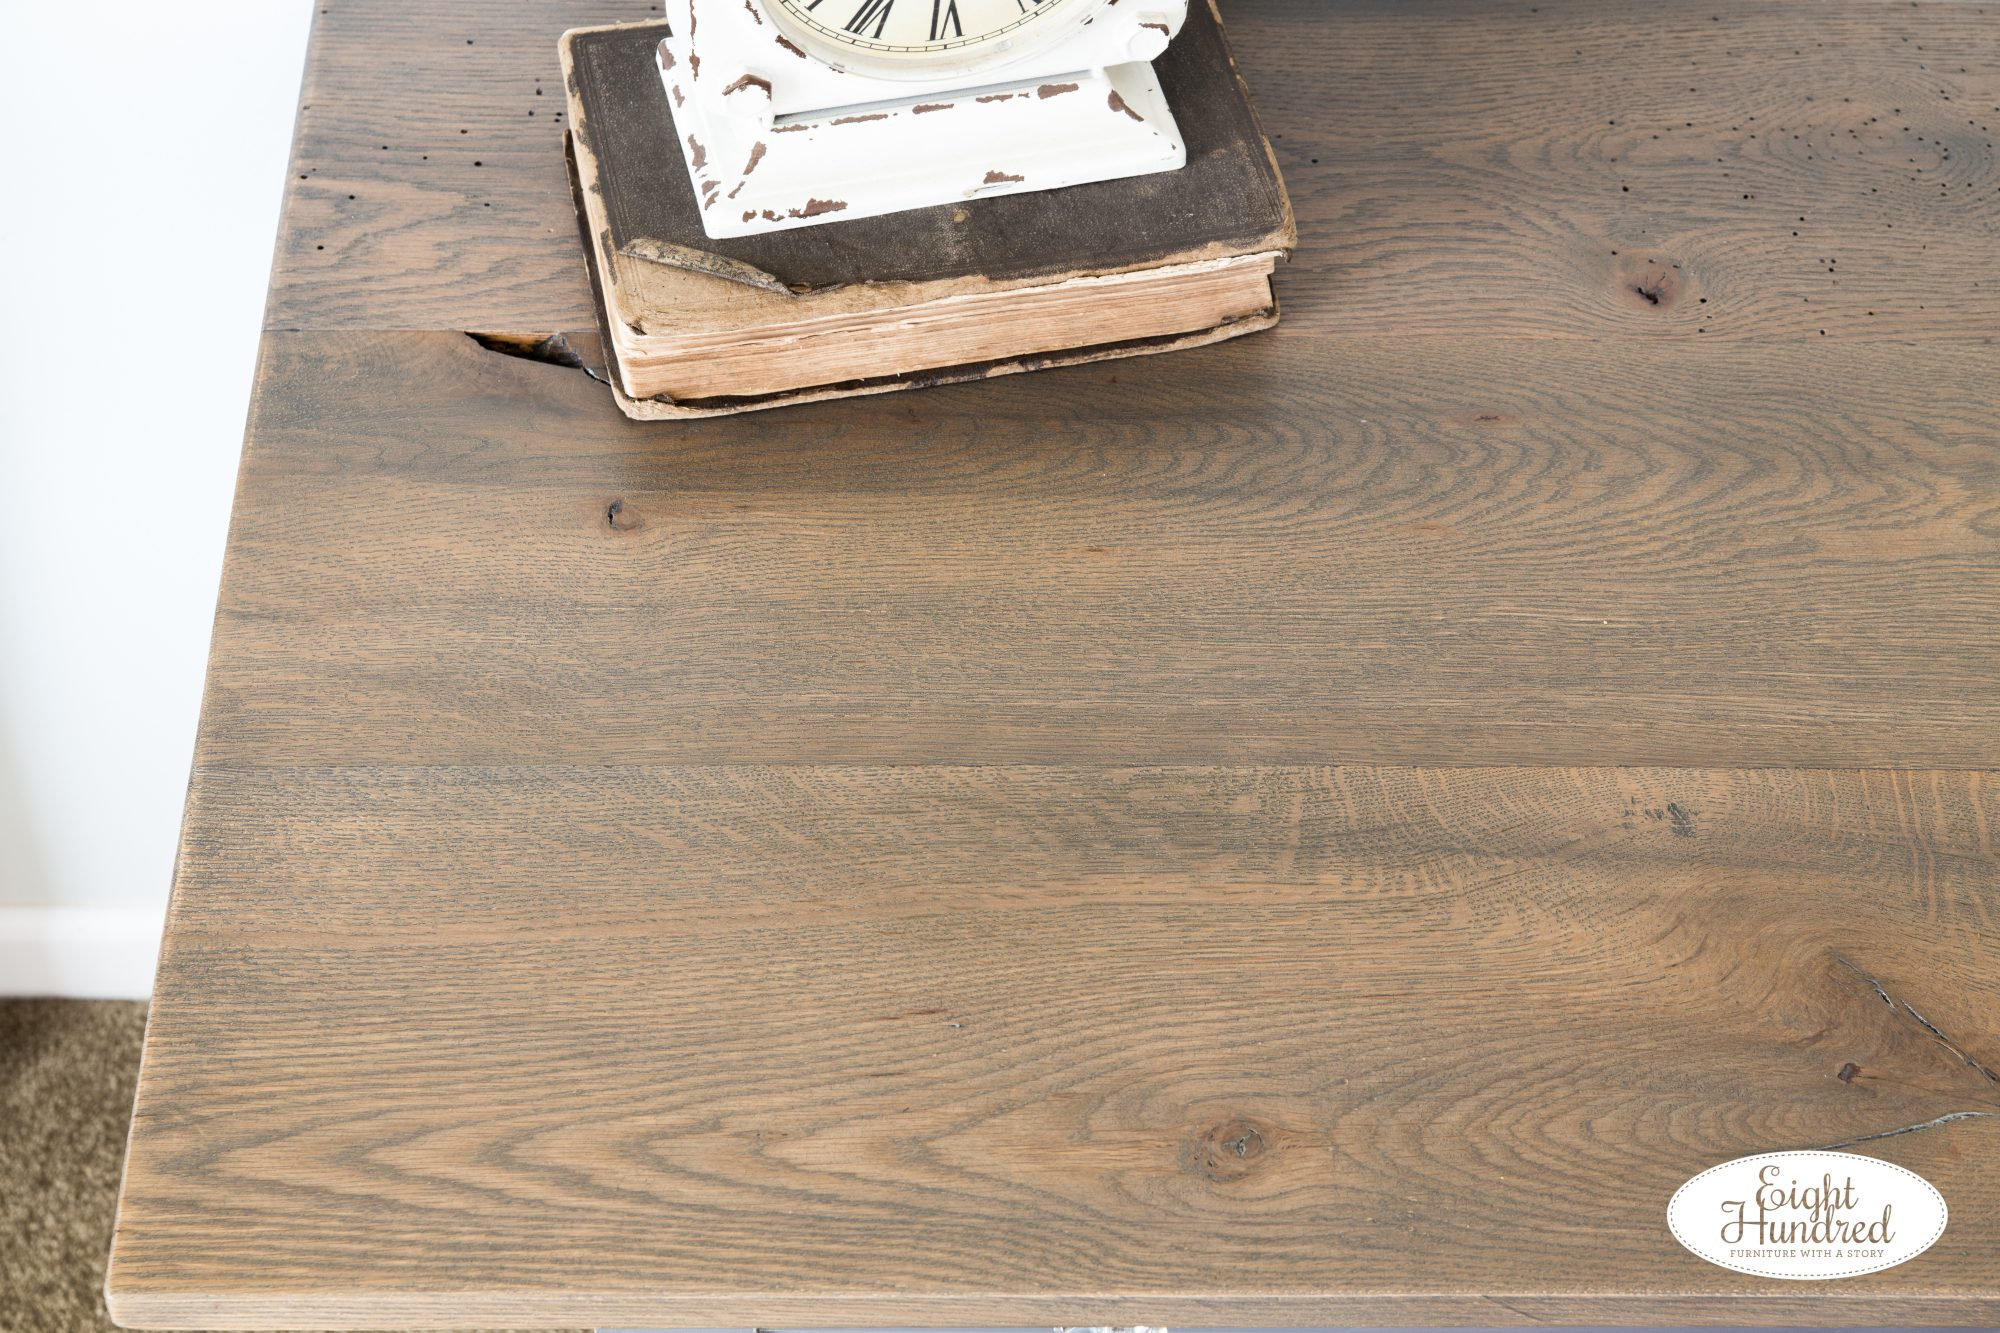 Graystone Water Based Wood Stain on reclaimed oak top of antique table